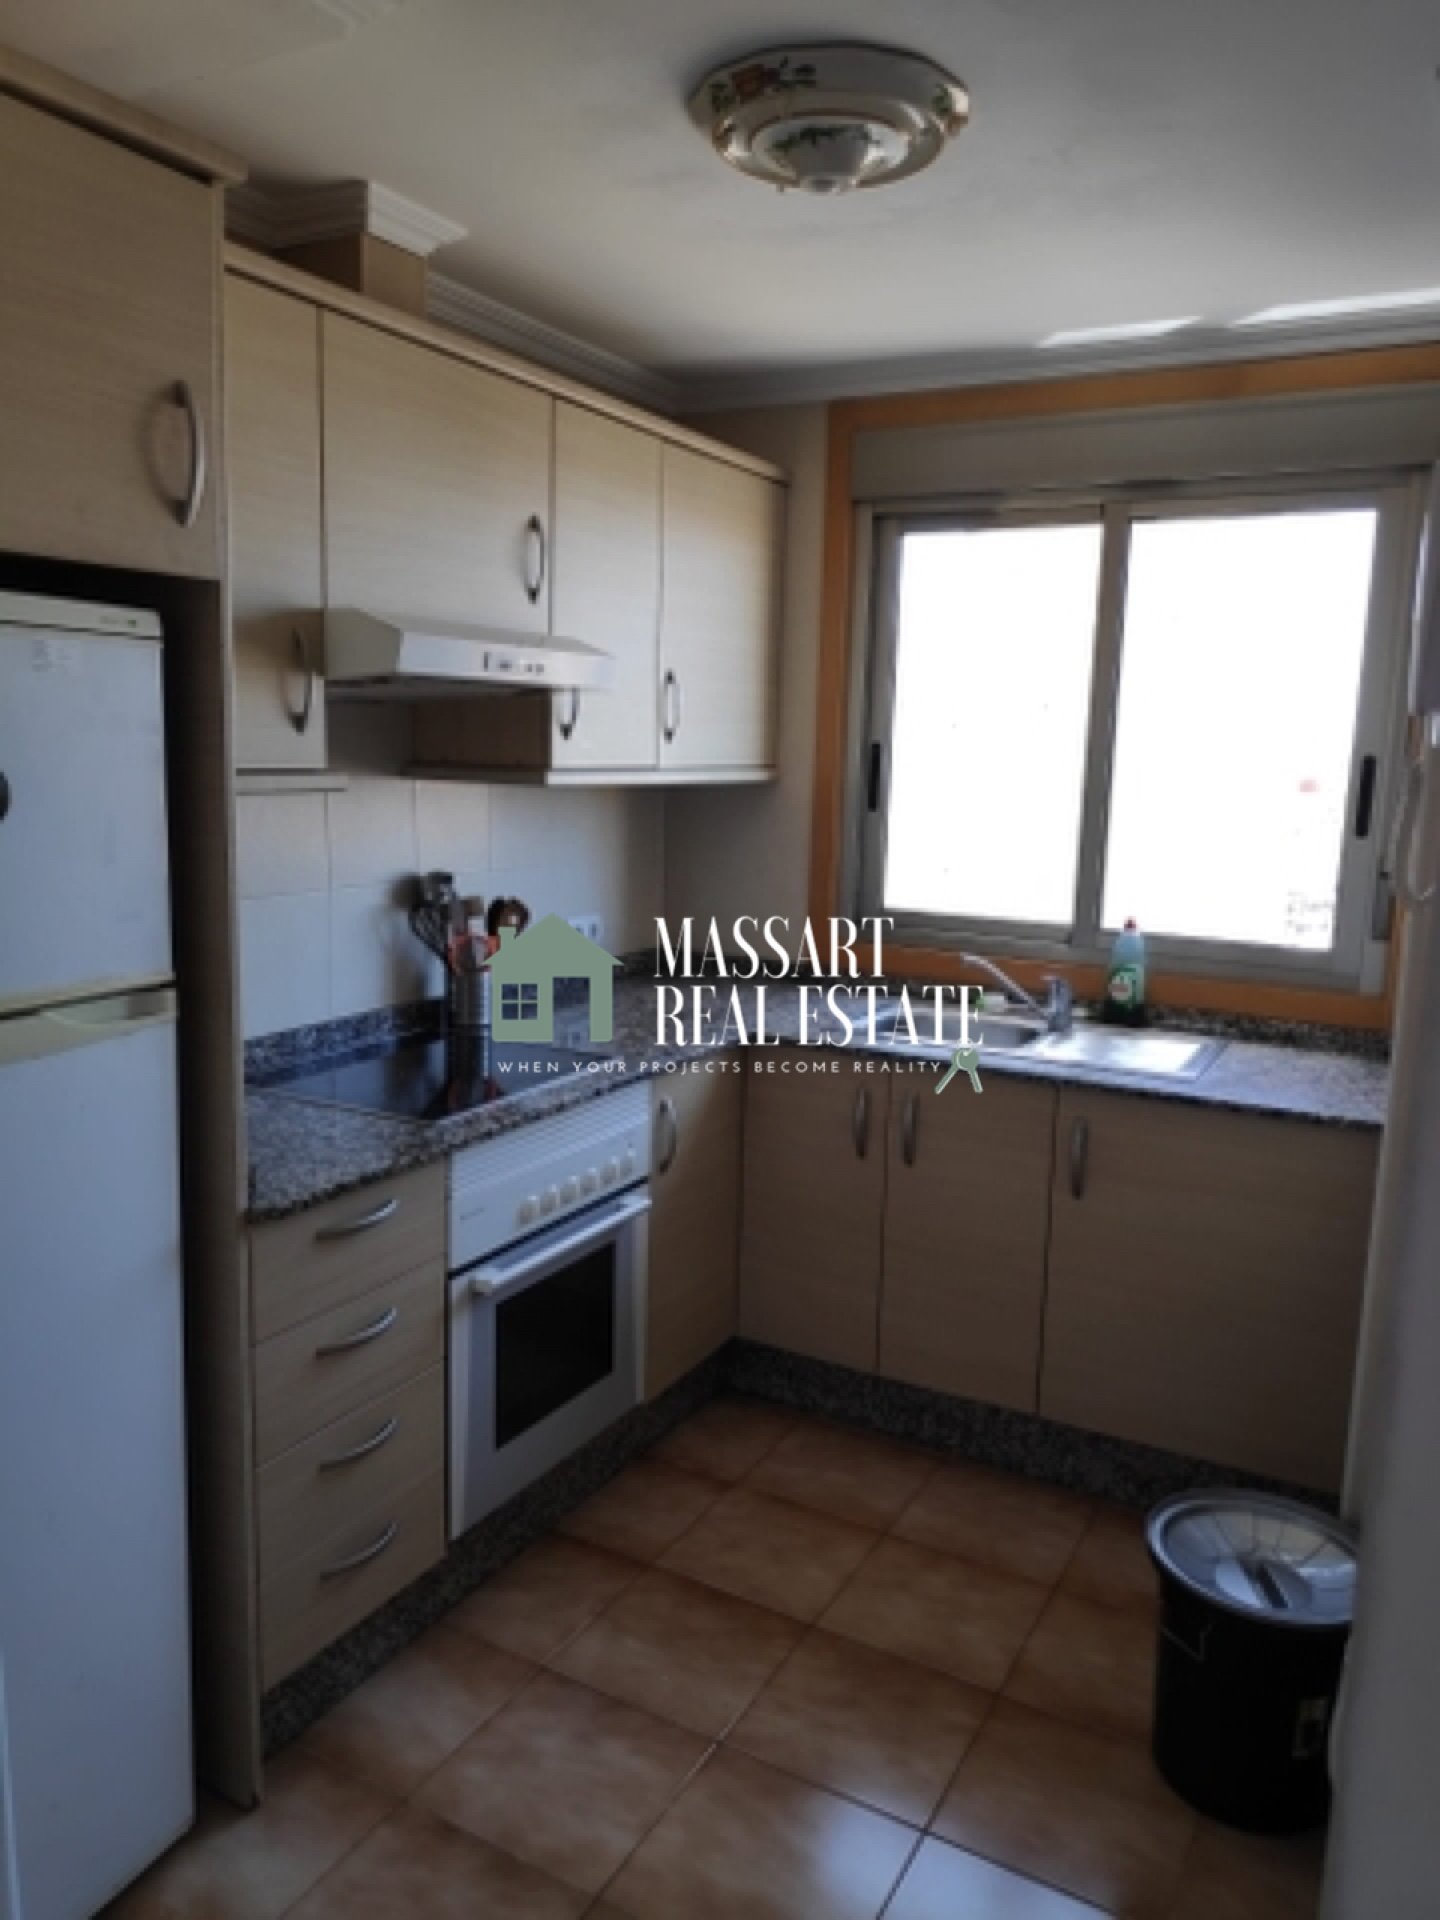 For rent in a central area of San Isidro, spacious 79 m2 apartment completely renovated and furnished.